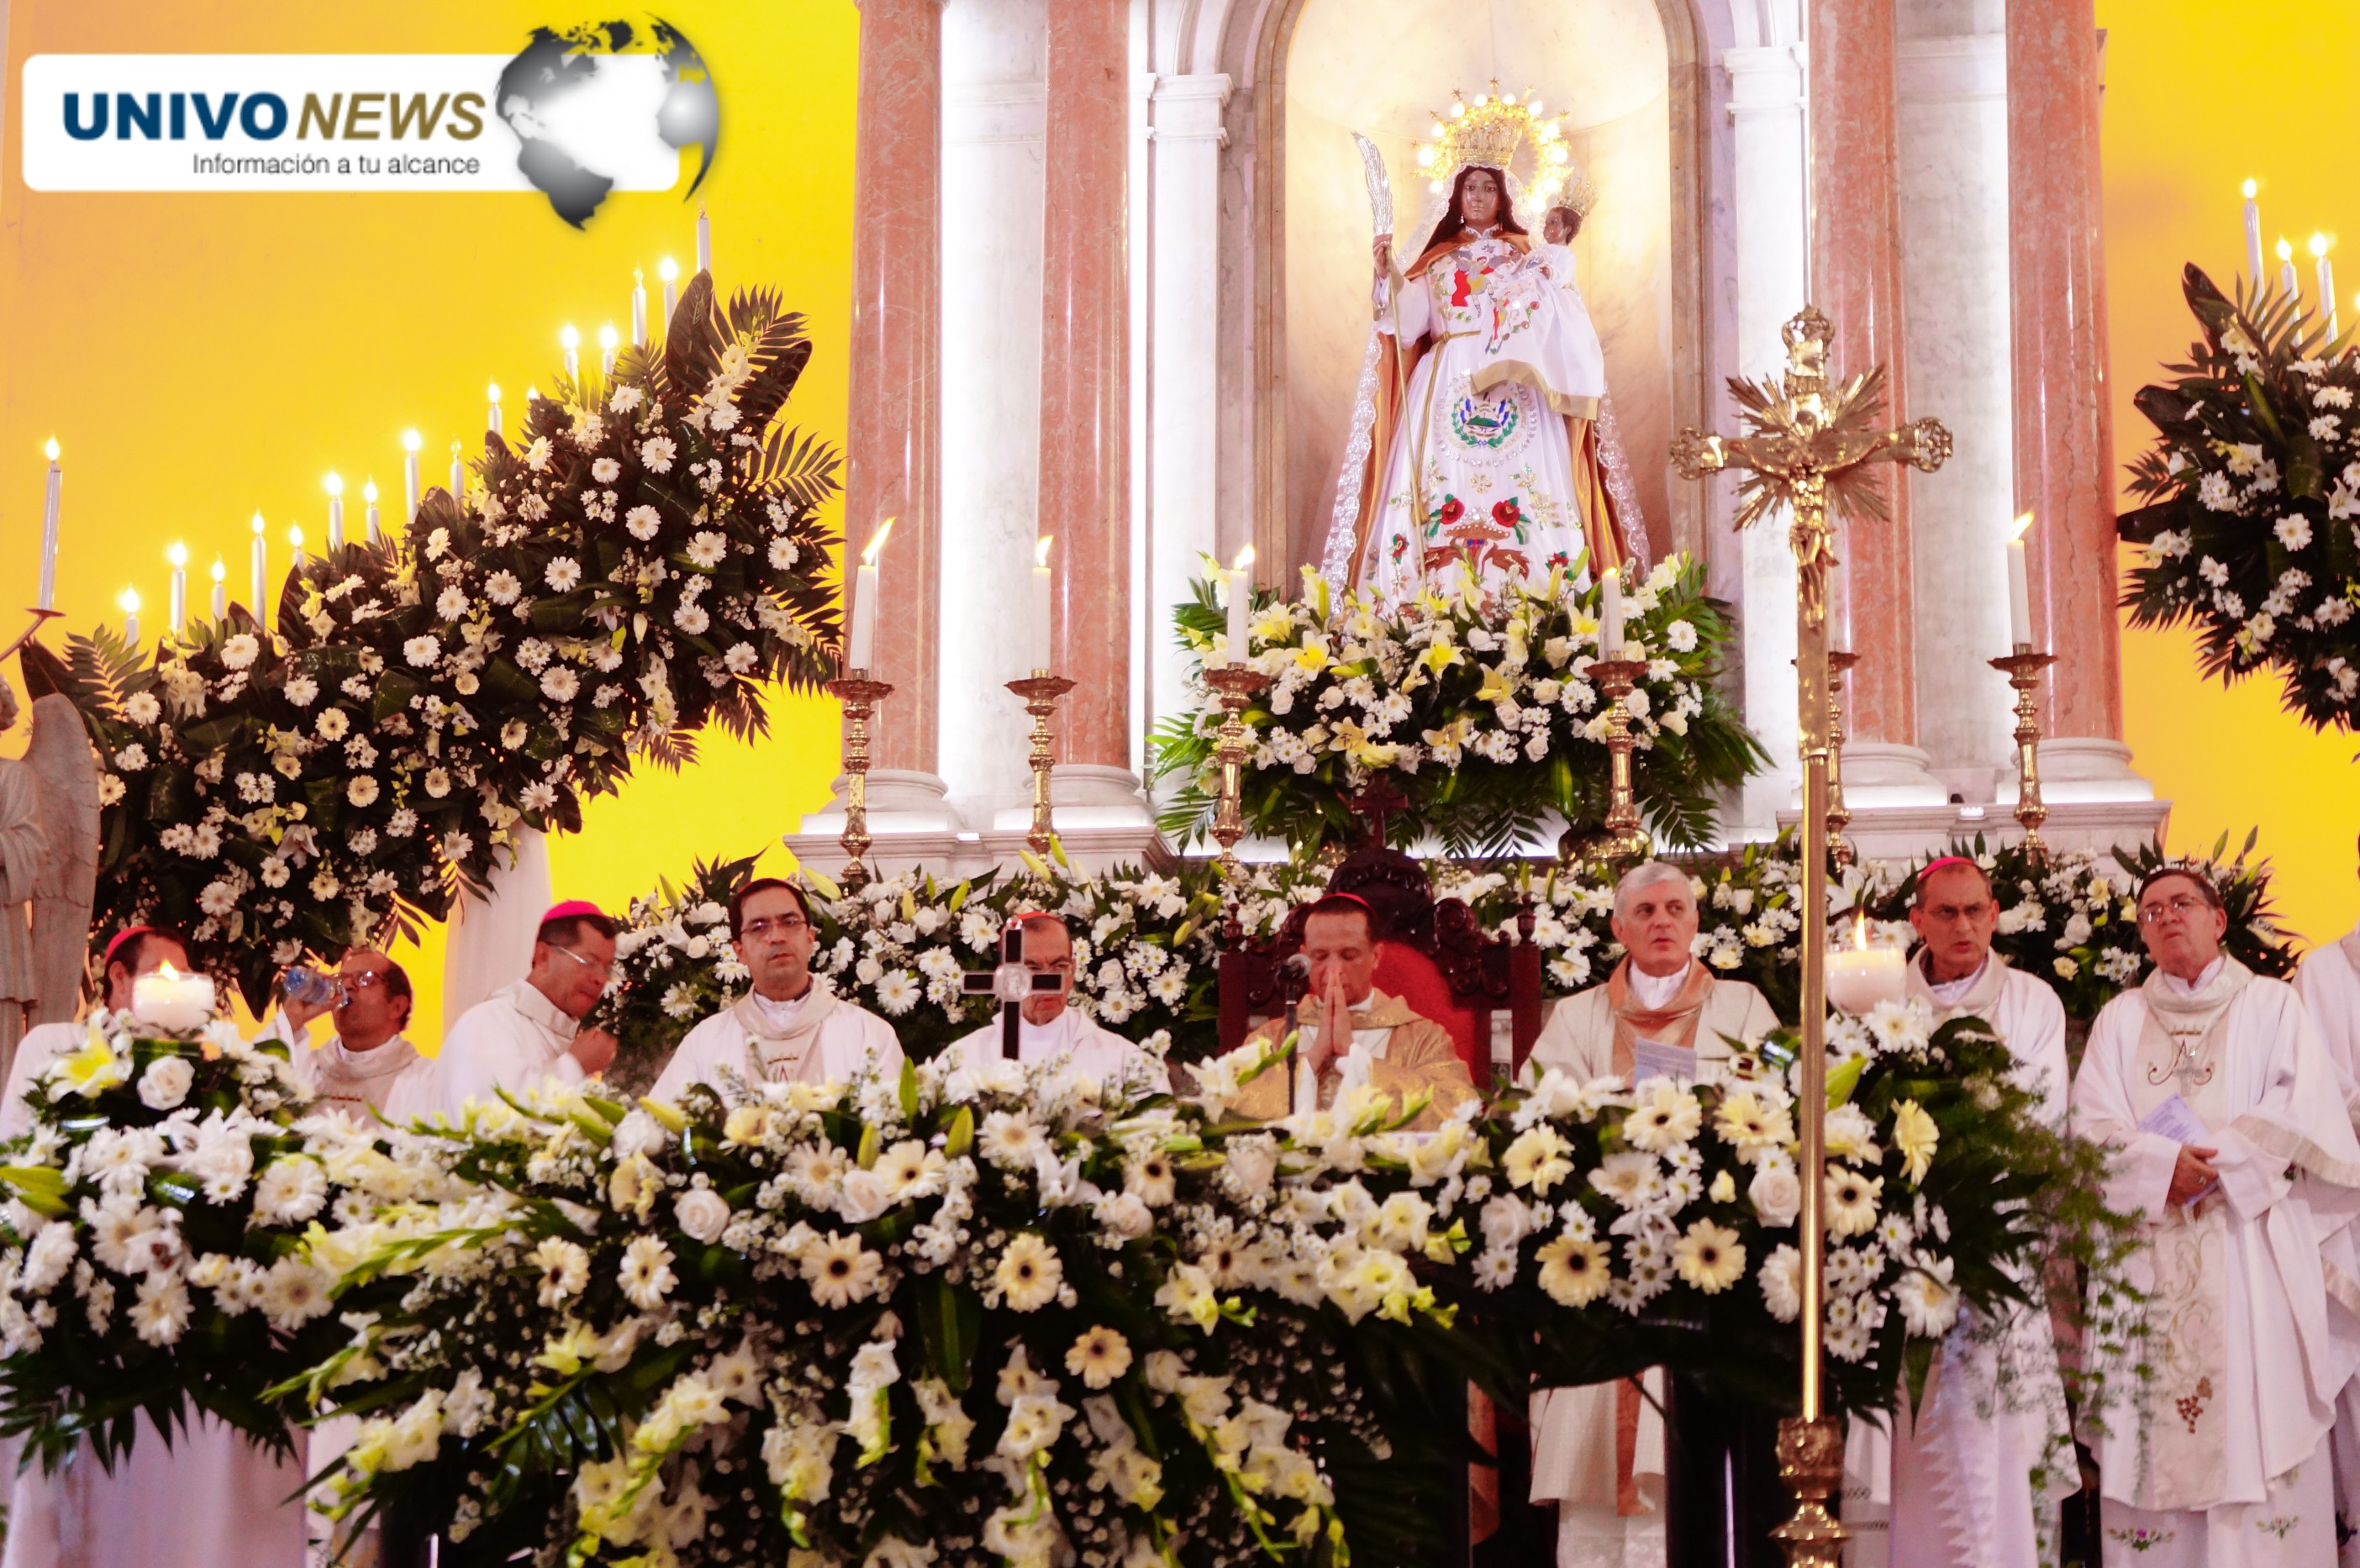 Photo of Galería de fotos de la misa ofrecida a la Virgen de La Paz